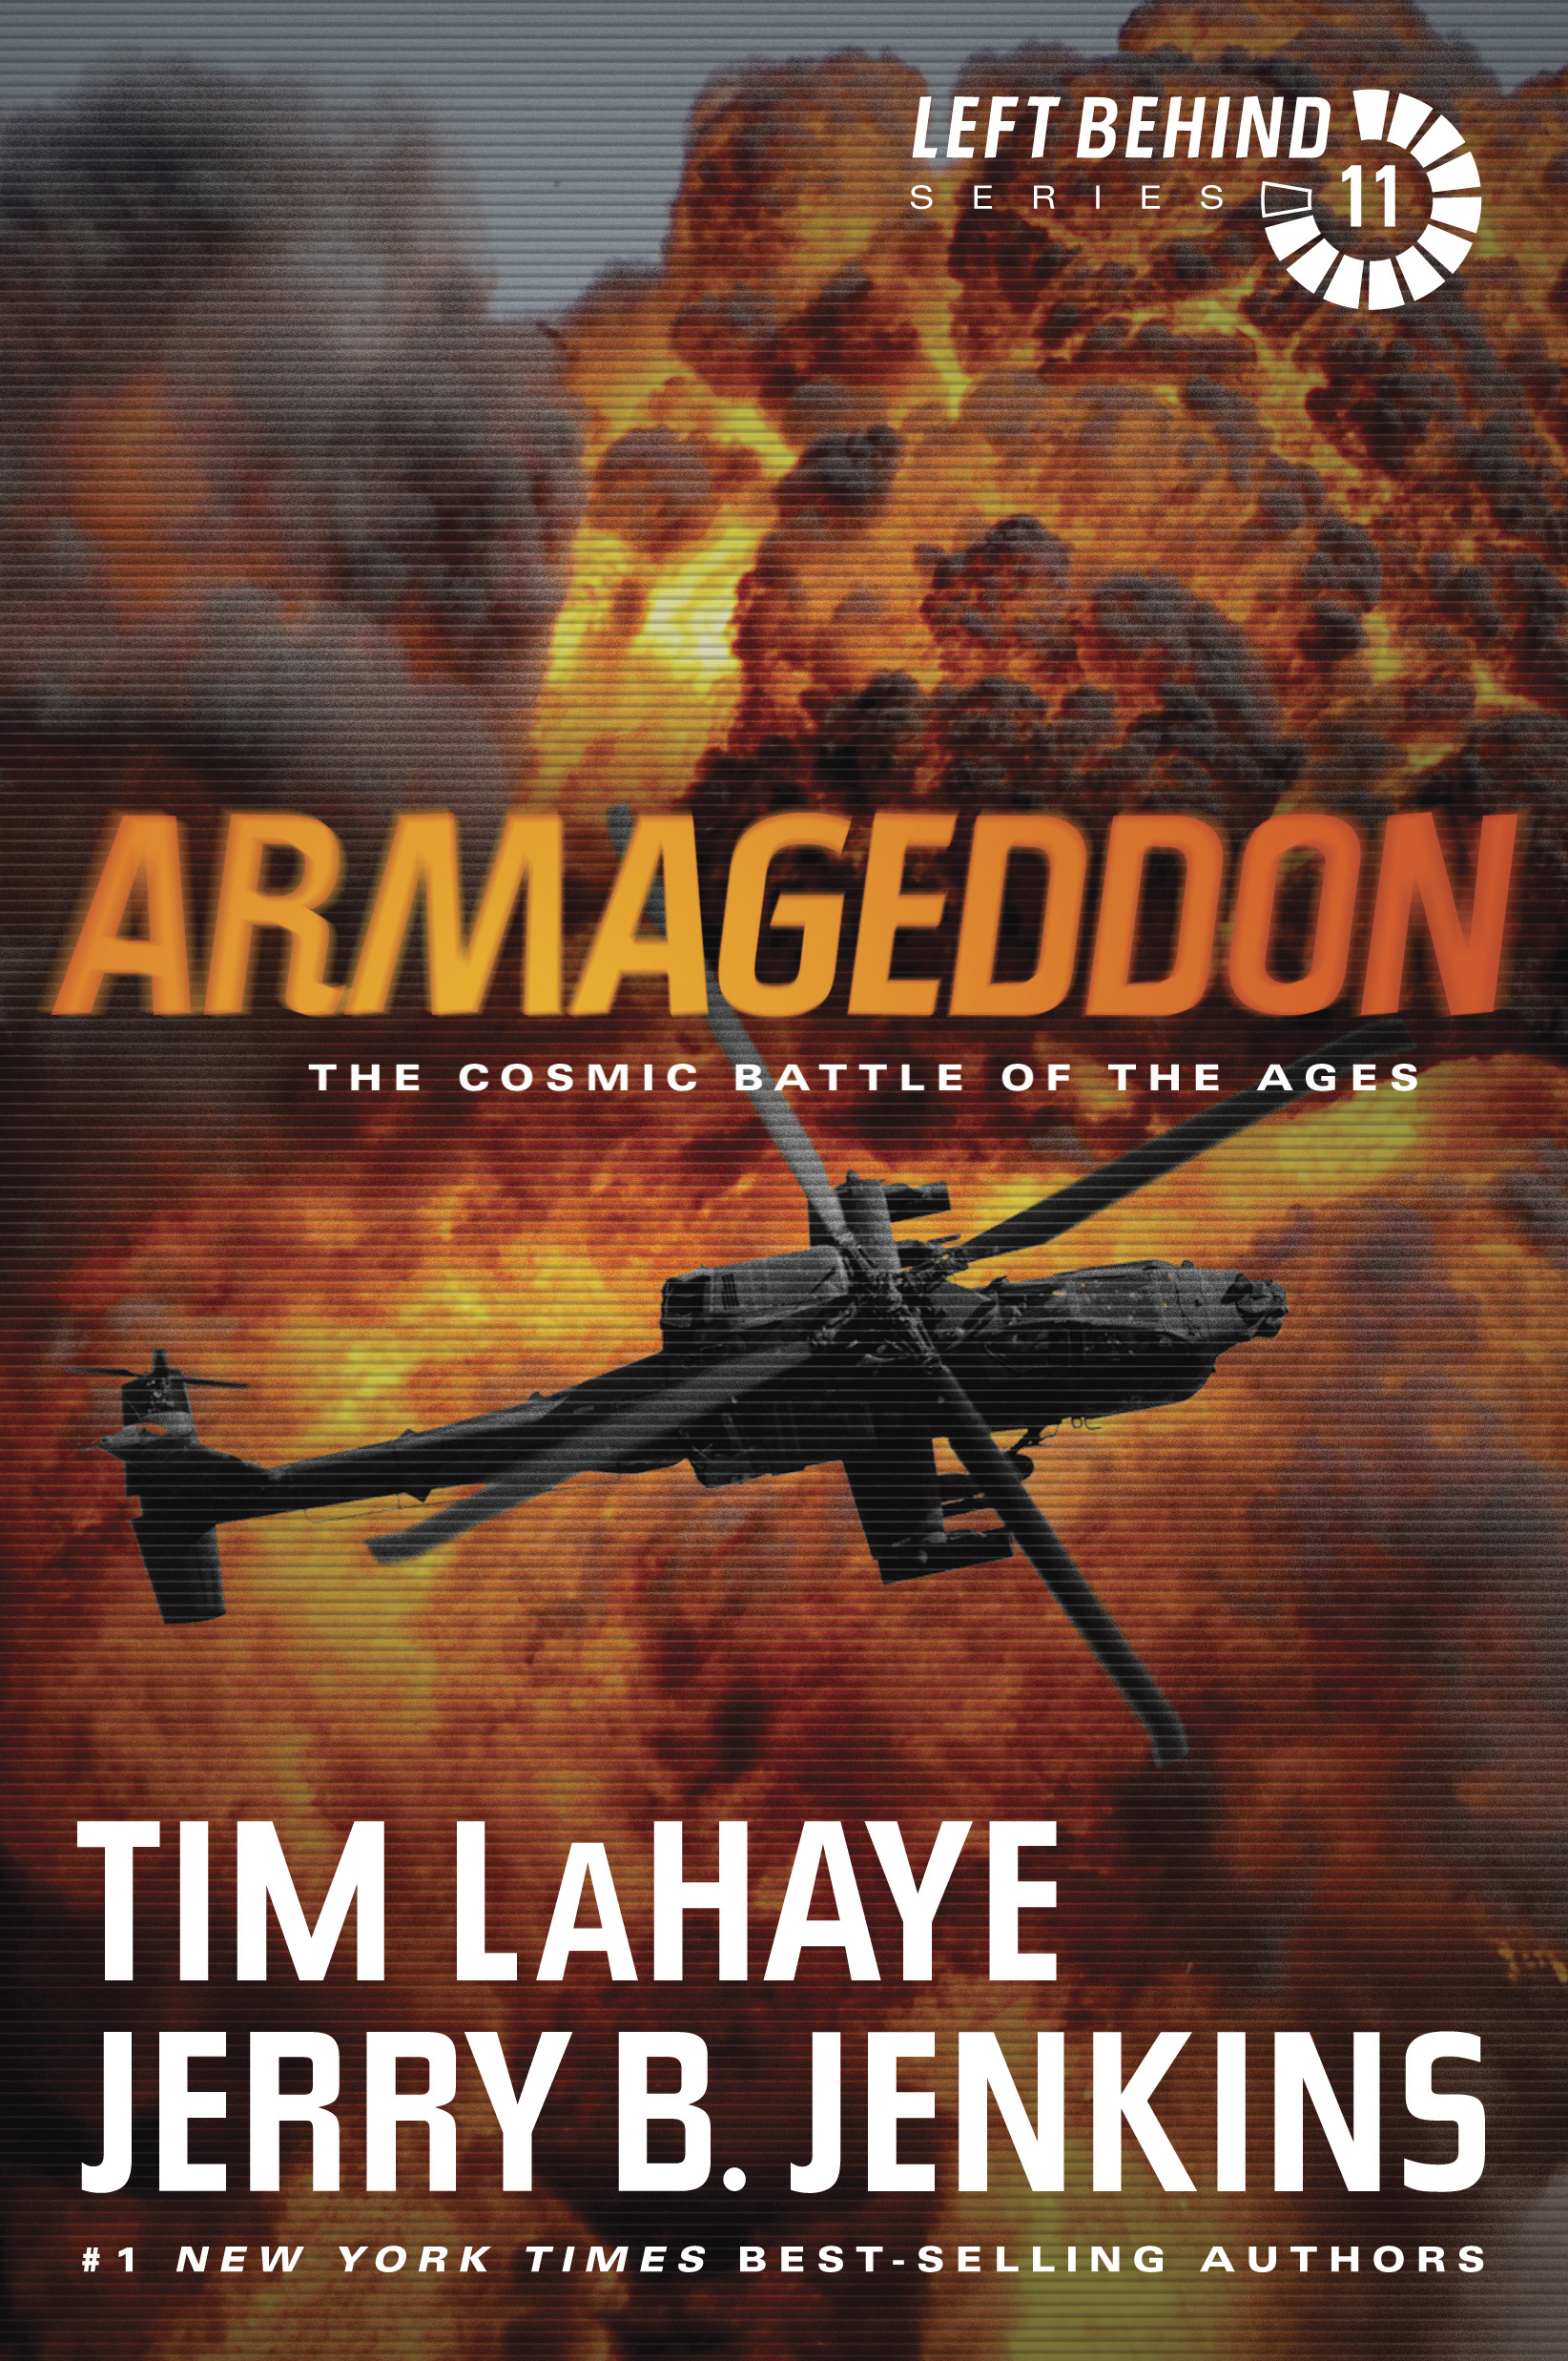 Armageddon (Left Behind #11) The Cosmic Battle of the Ages